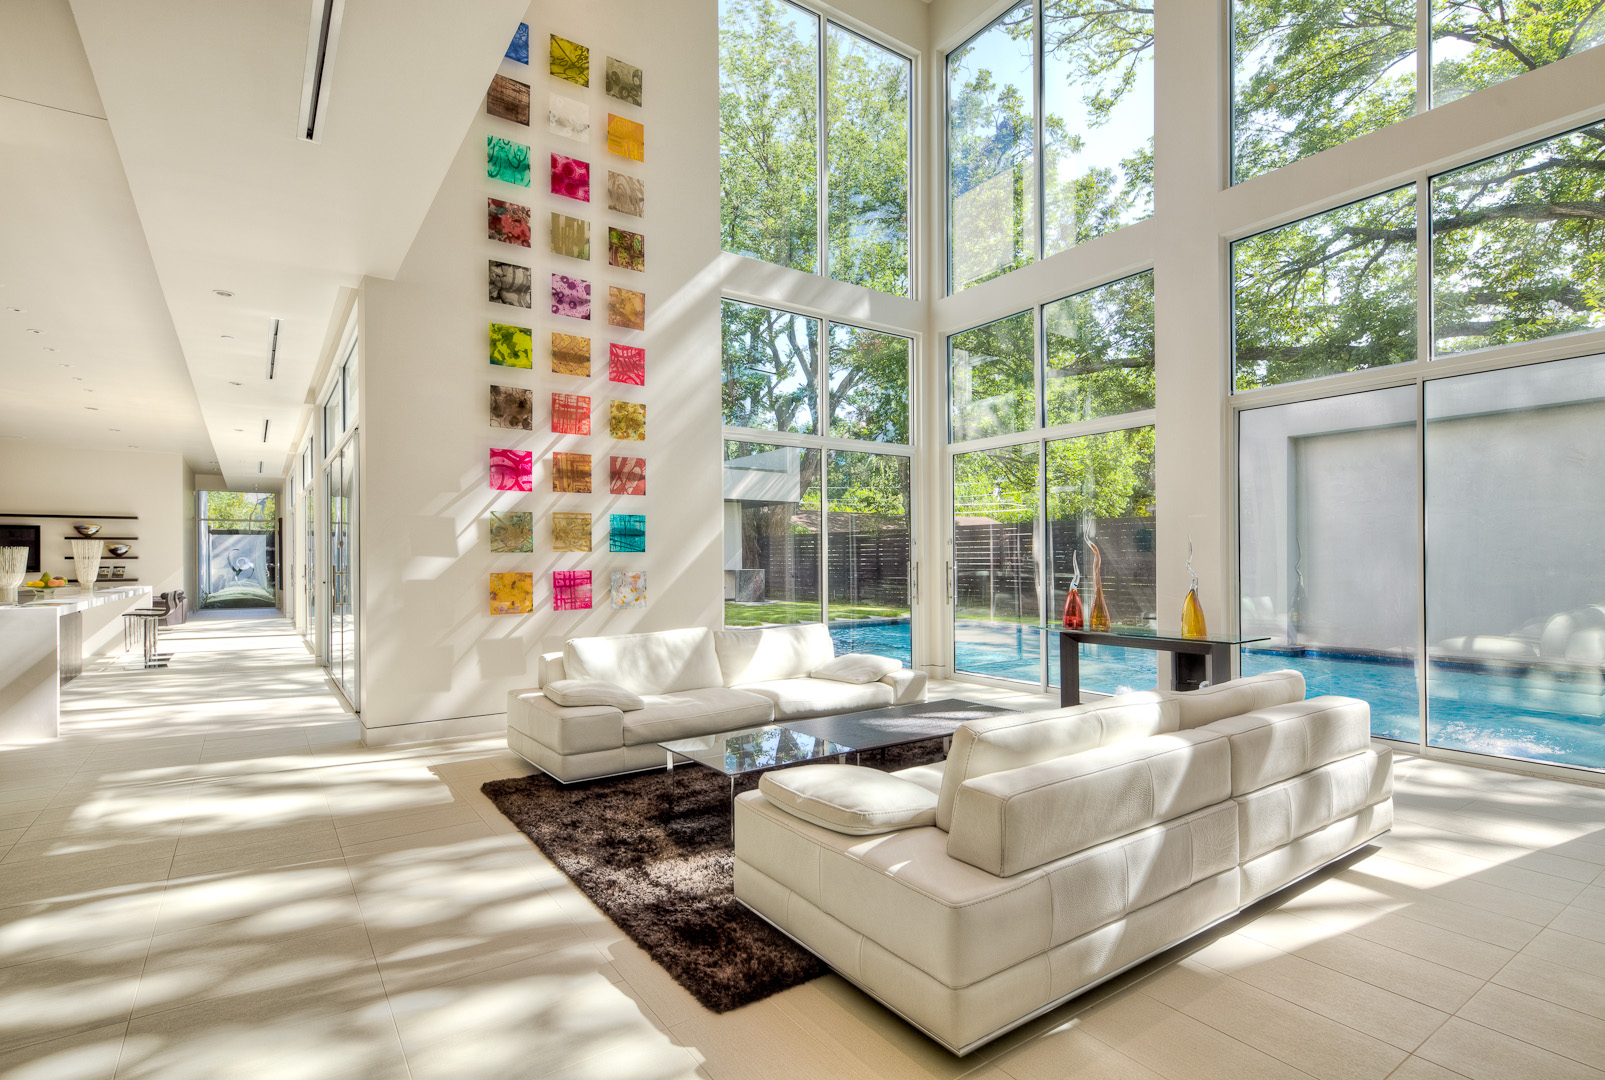 Dallas Residential Architecture And Interiors Photographer